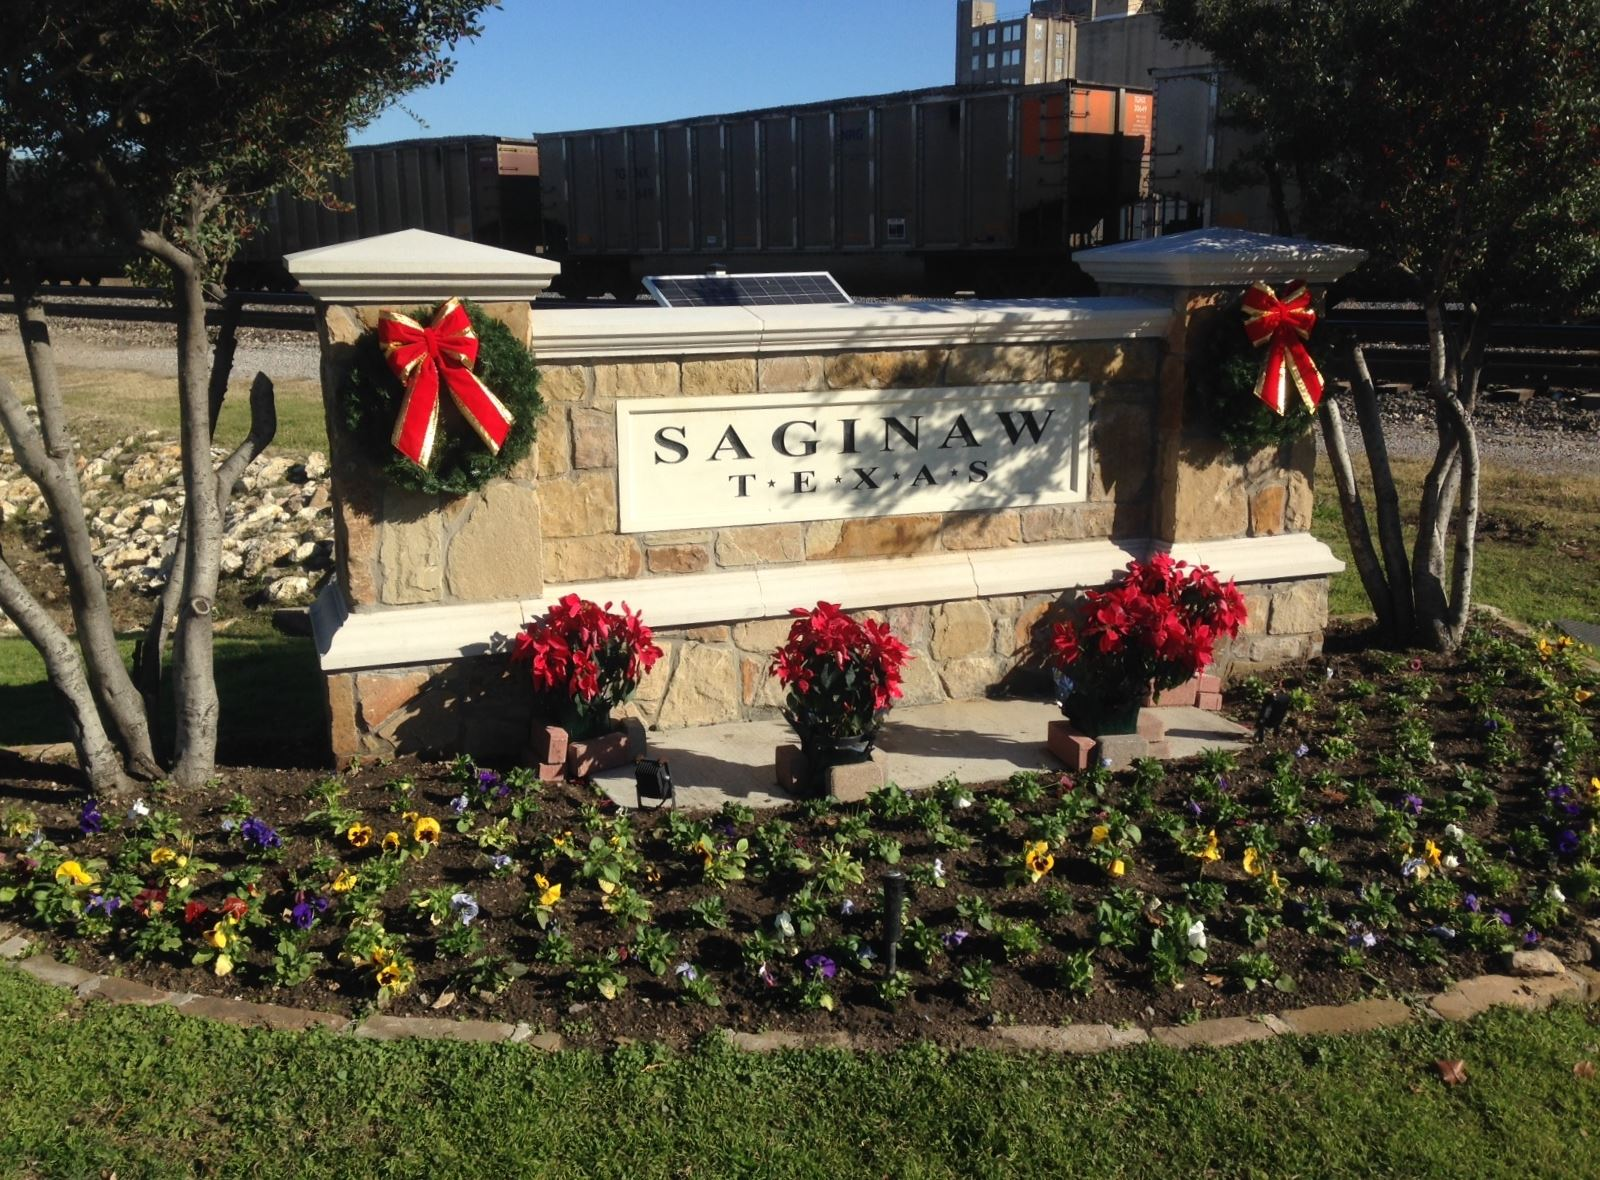 Saginaw Texas sign with Christmas decorations